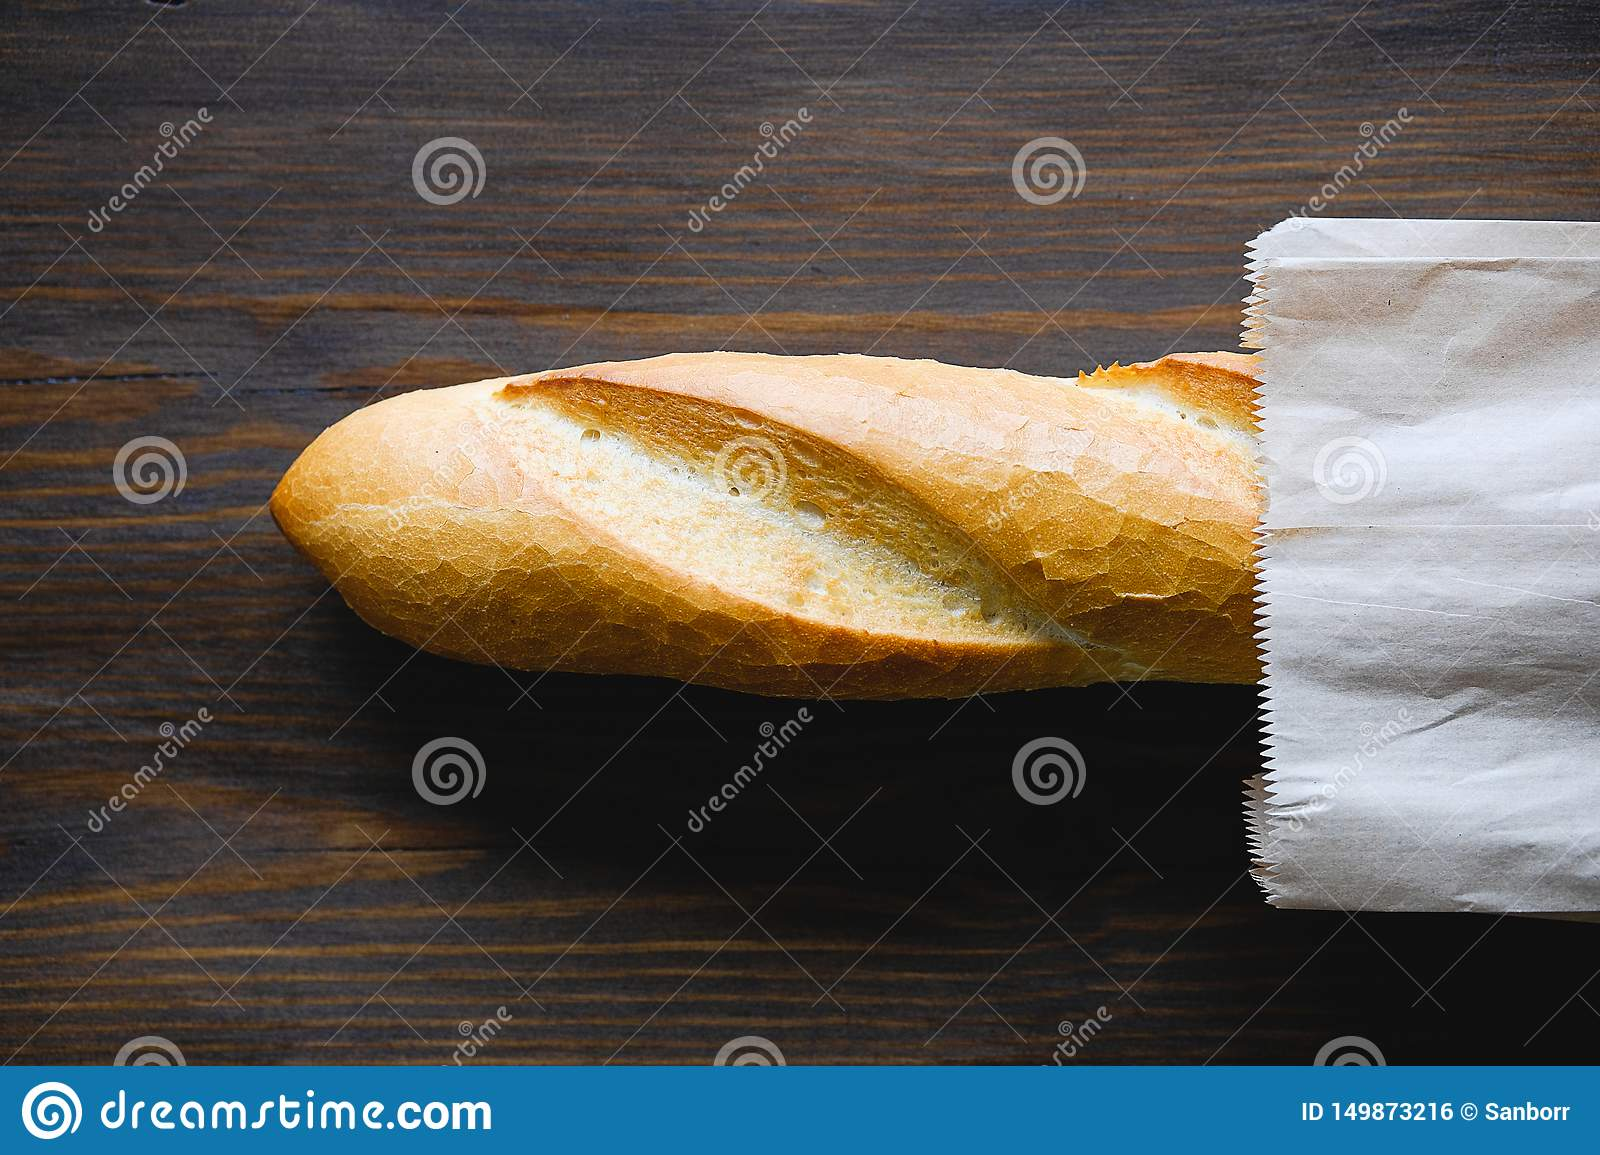 Freshly baked bread in a paper bag or package, on a cutting Board, on a brown wooden table, close-up. Copy space for text. The